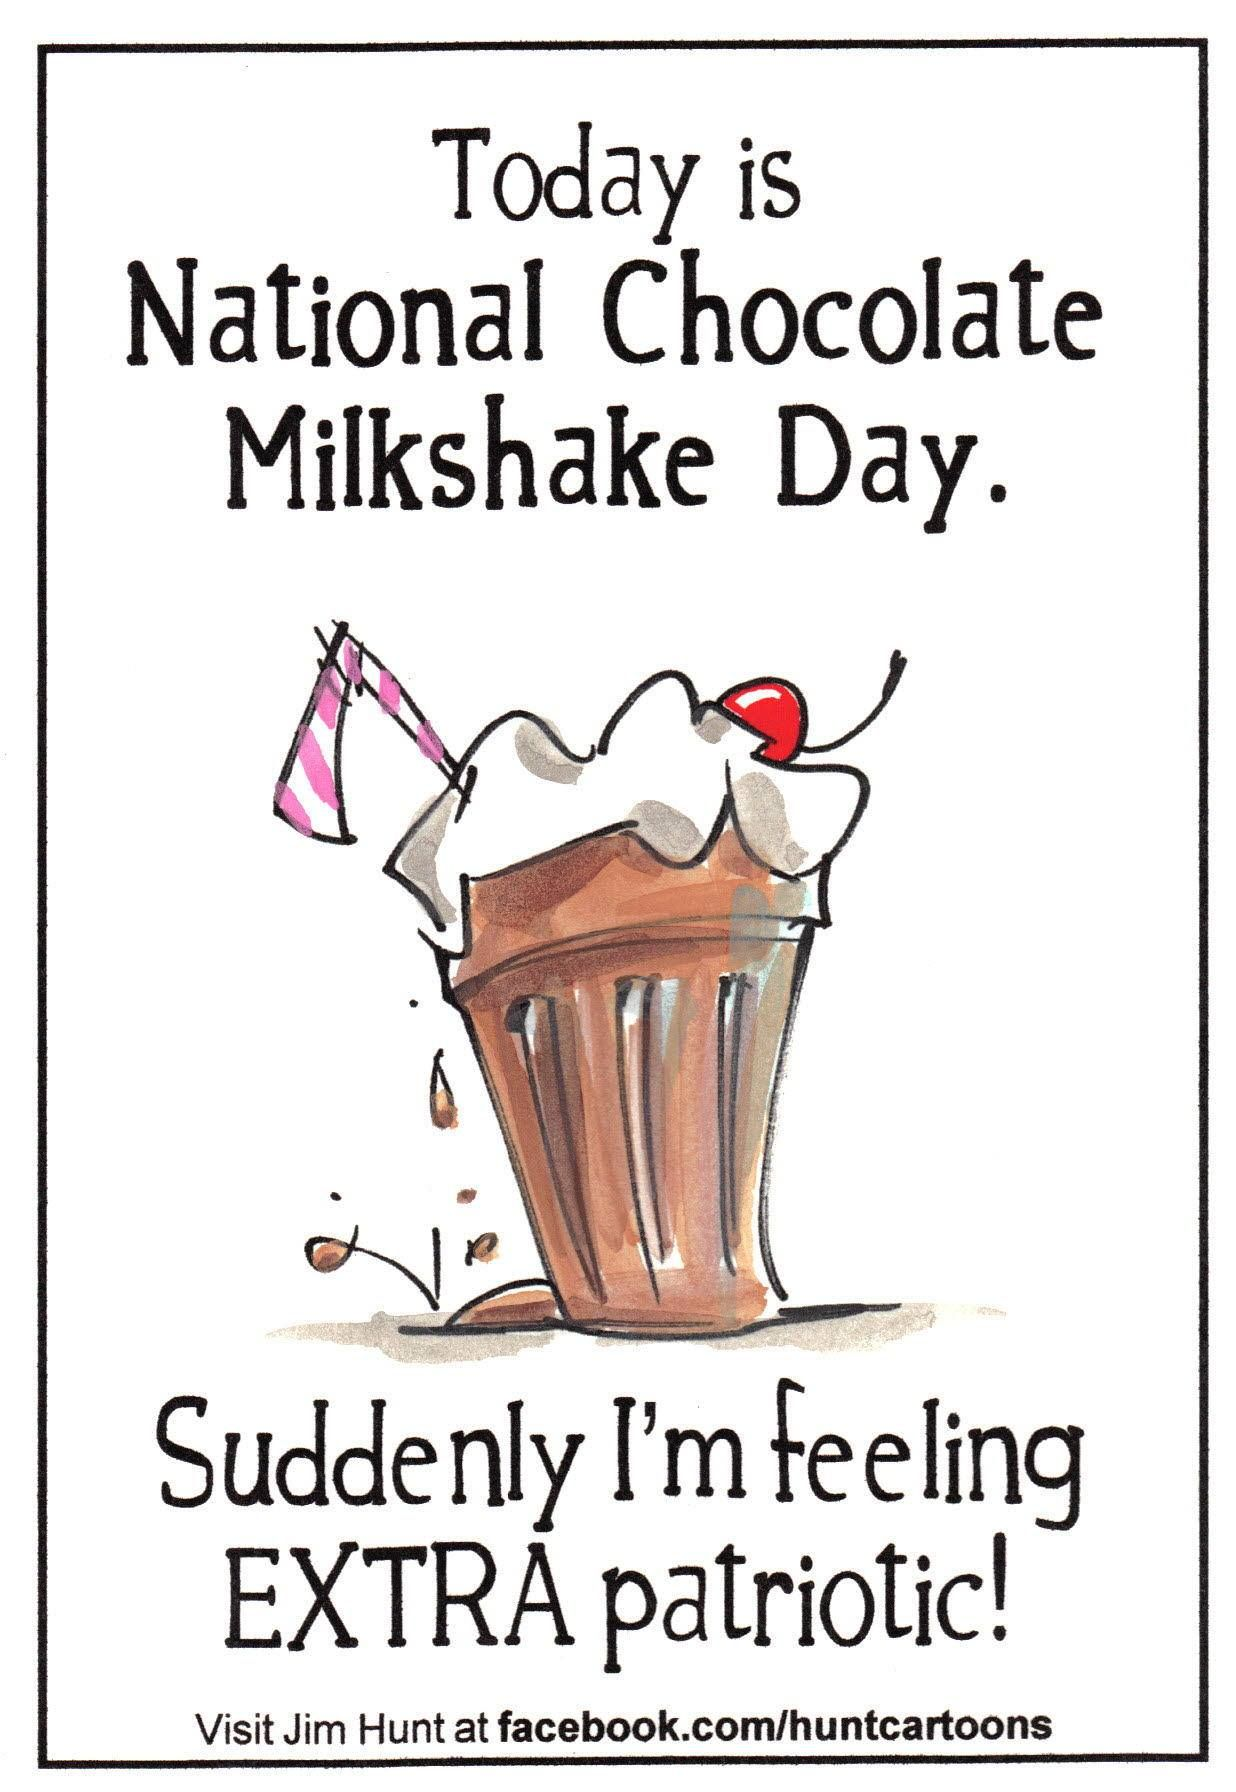 National Chocolate Milkshake Day Sept 12 Chocolate Milkshake Milkshake National Milkshake Day